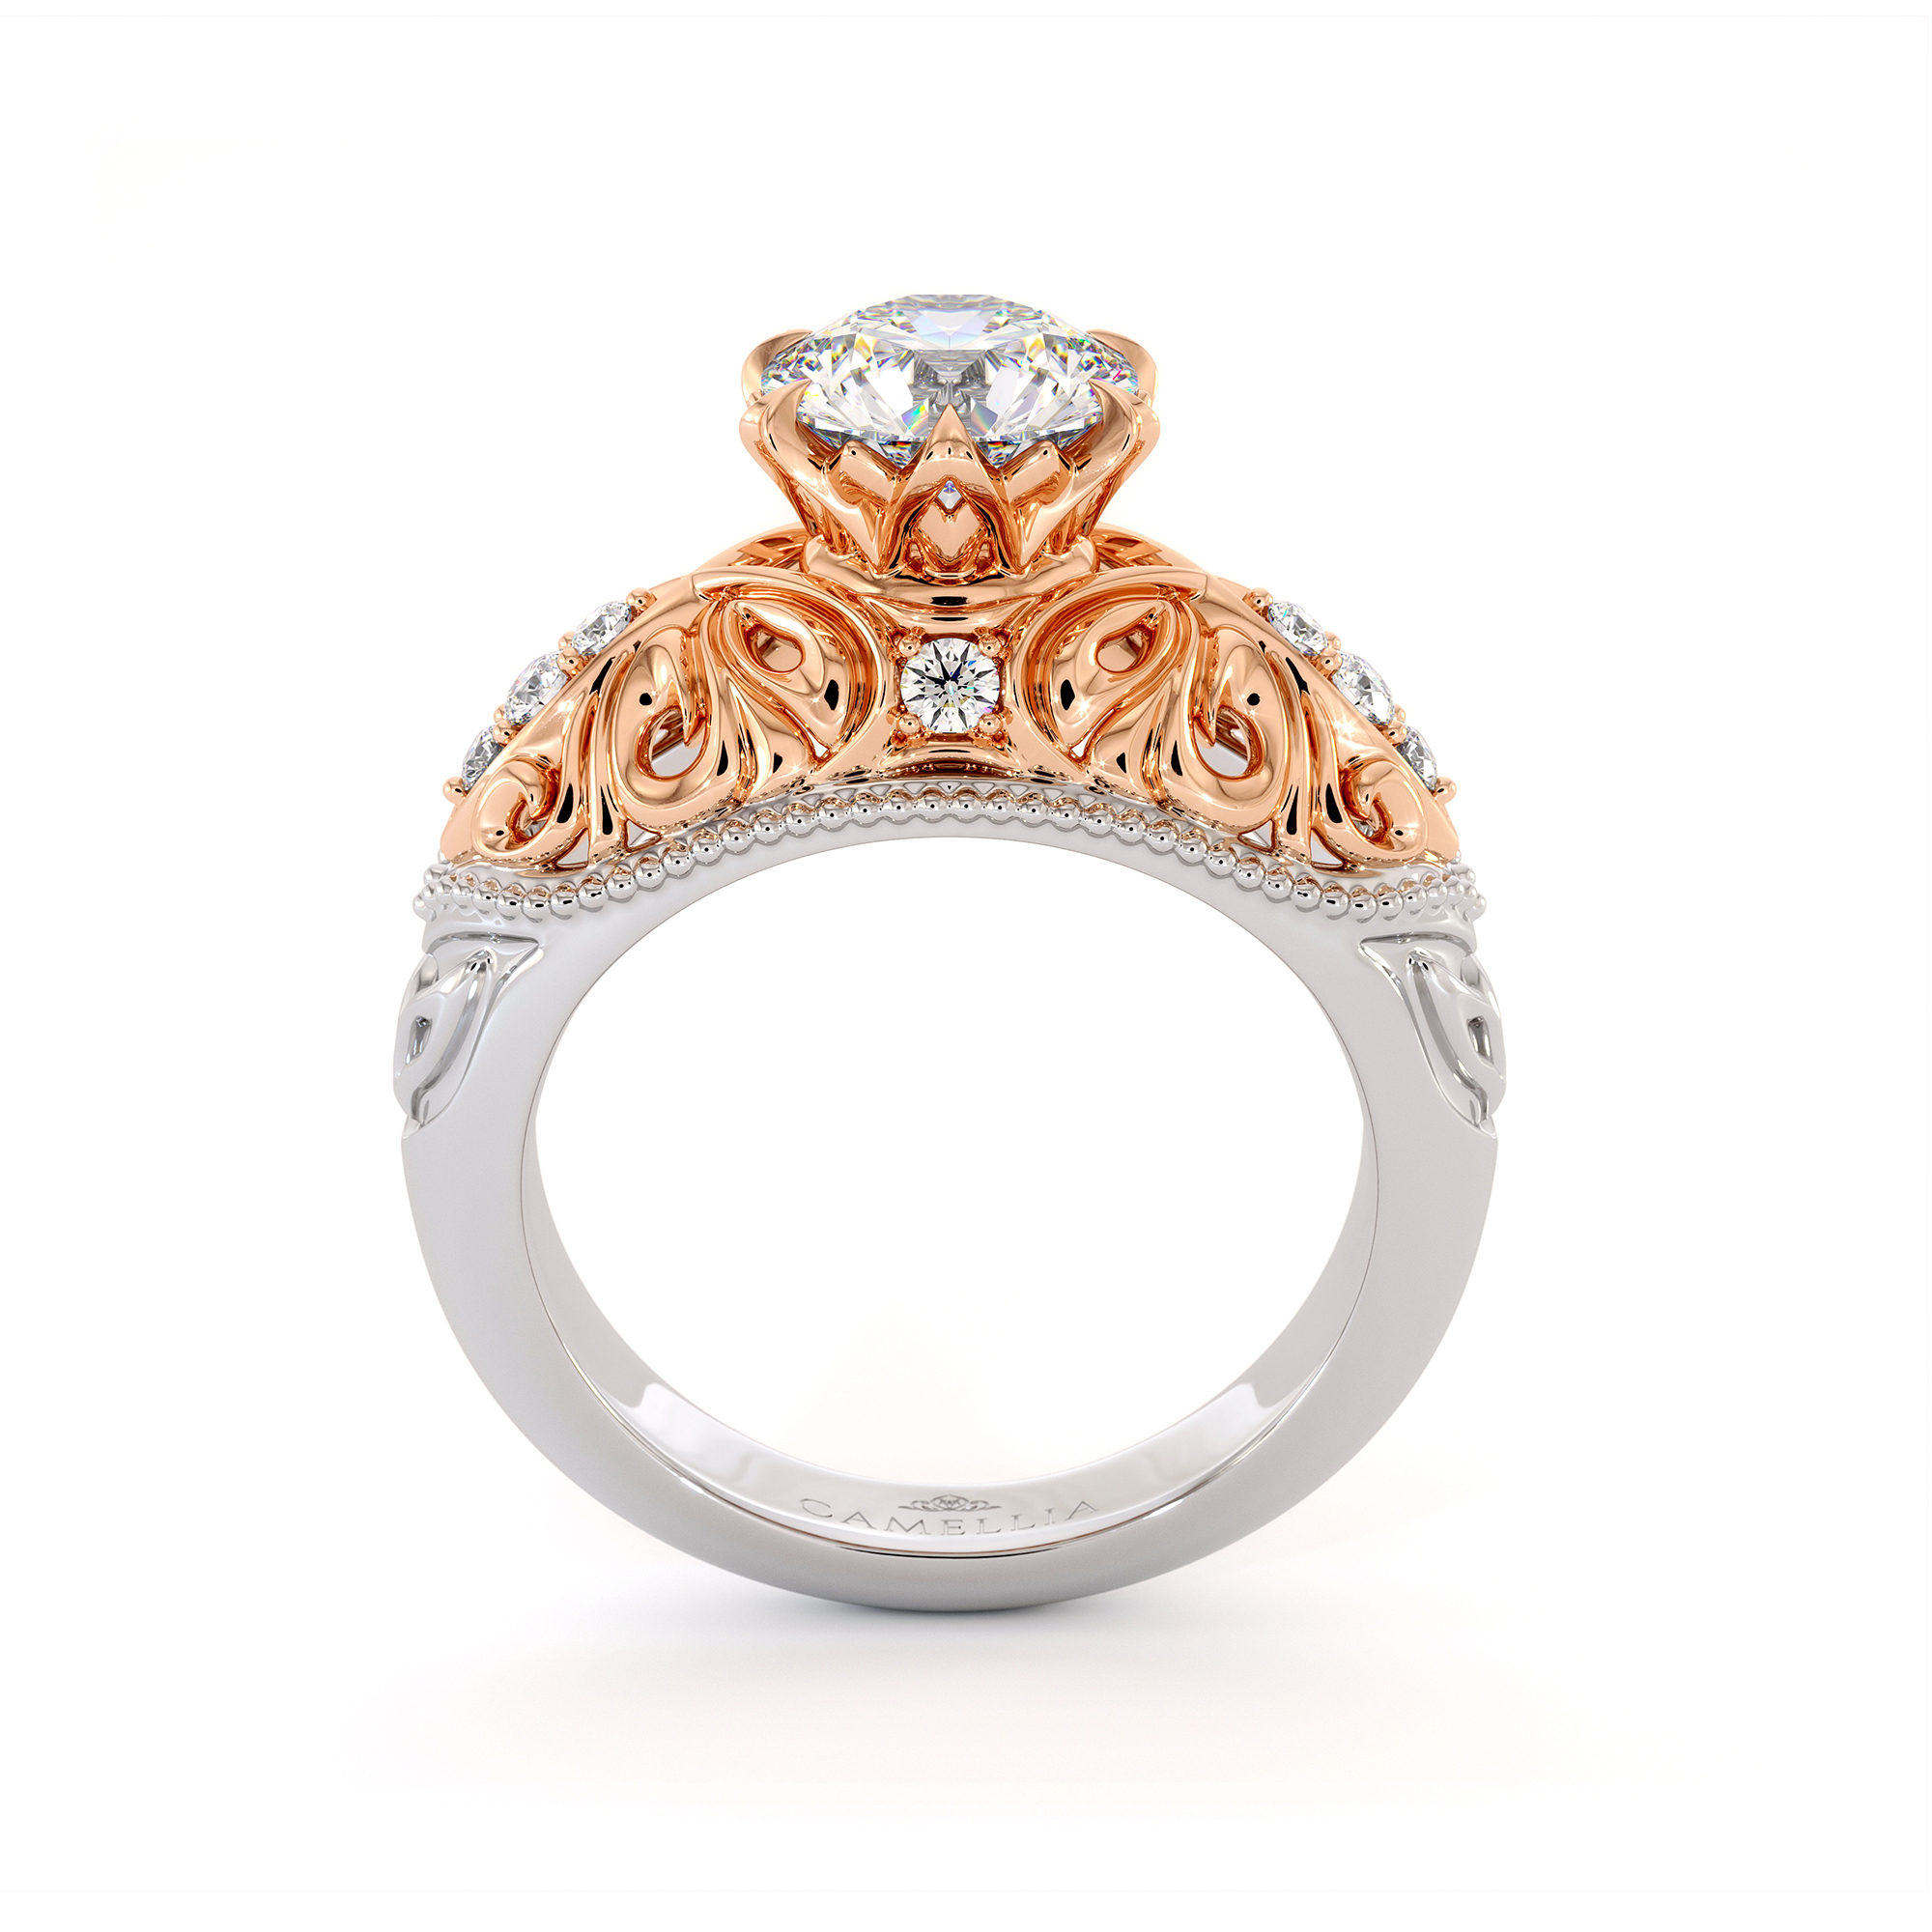 Particular Leaves Engagement Ring Exalted Moissanite Ring Natural Side Diamonds Ring Handmade Filigree Gold Engagement Ring